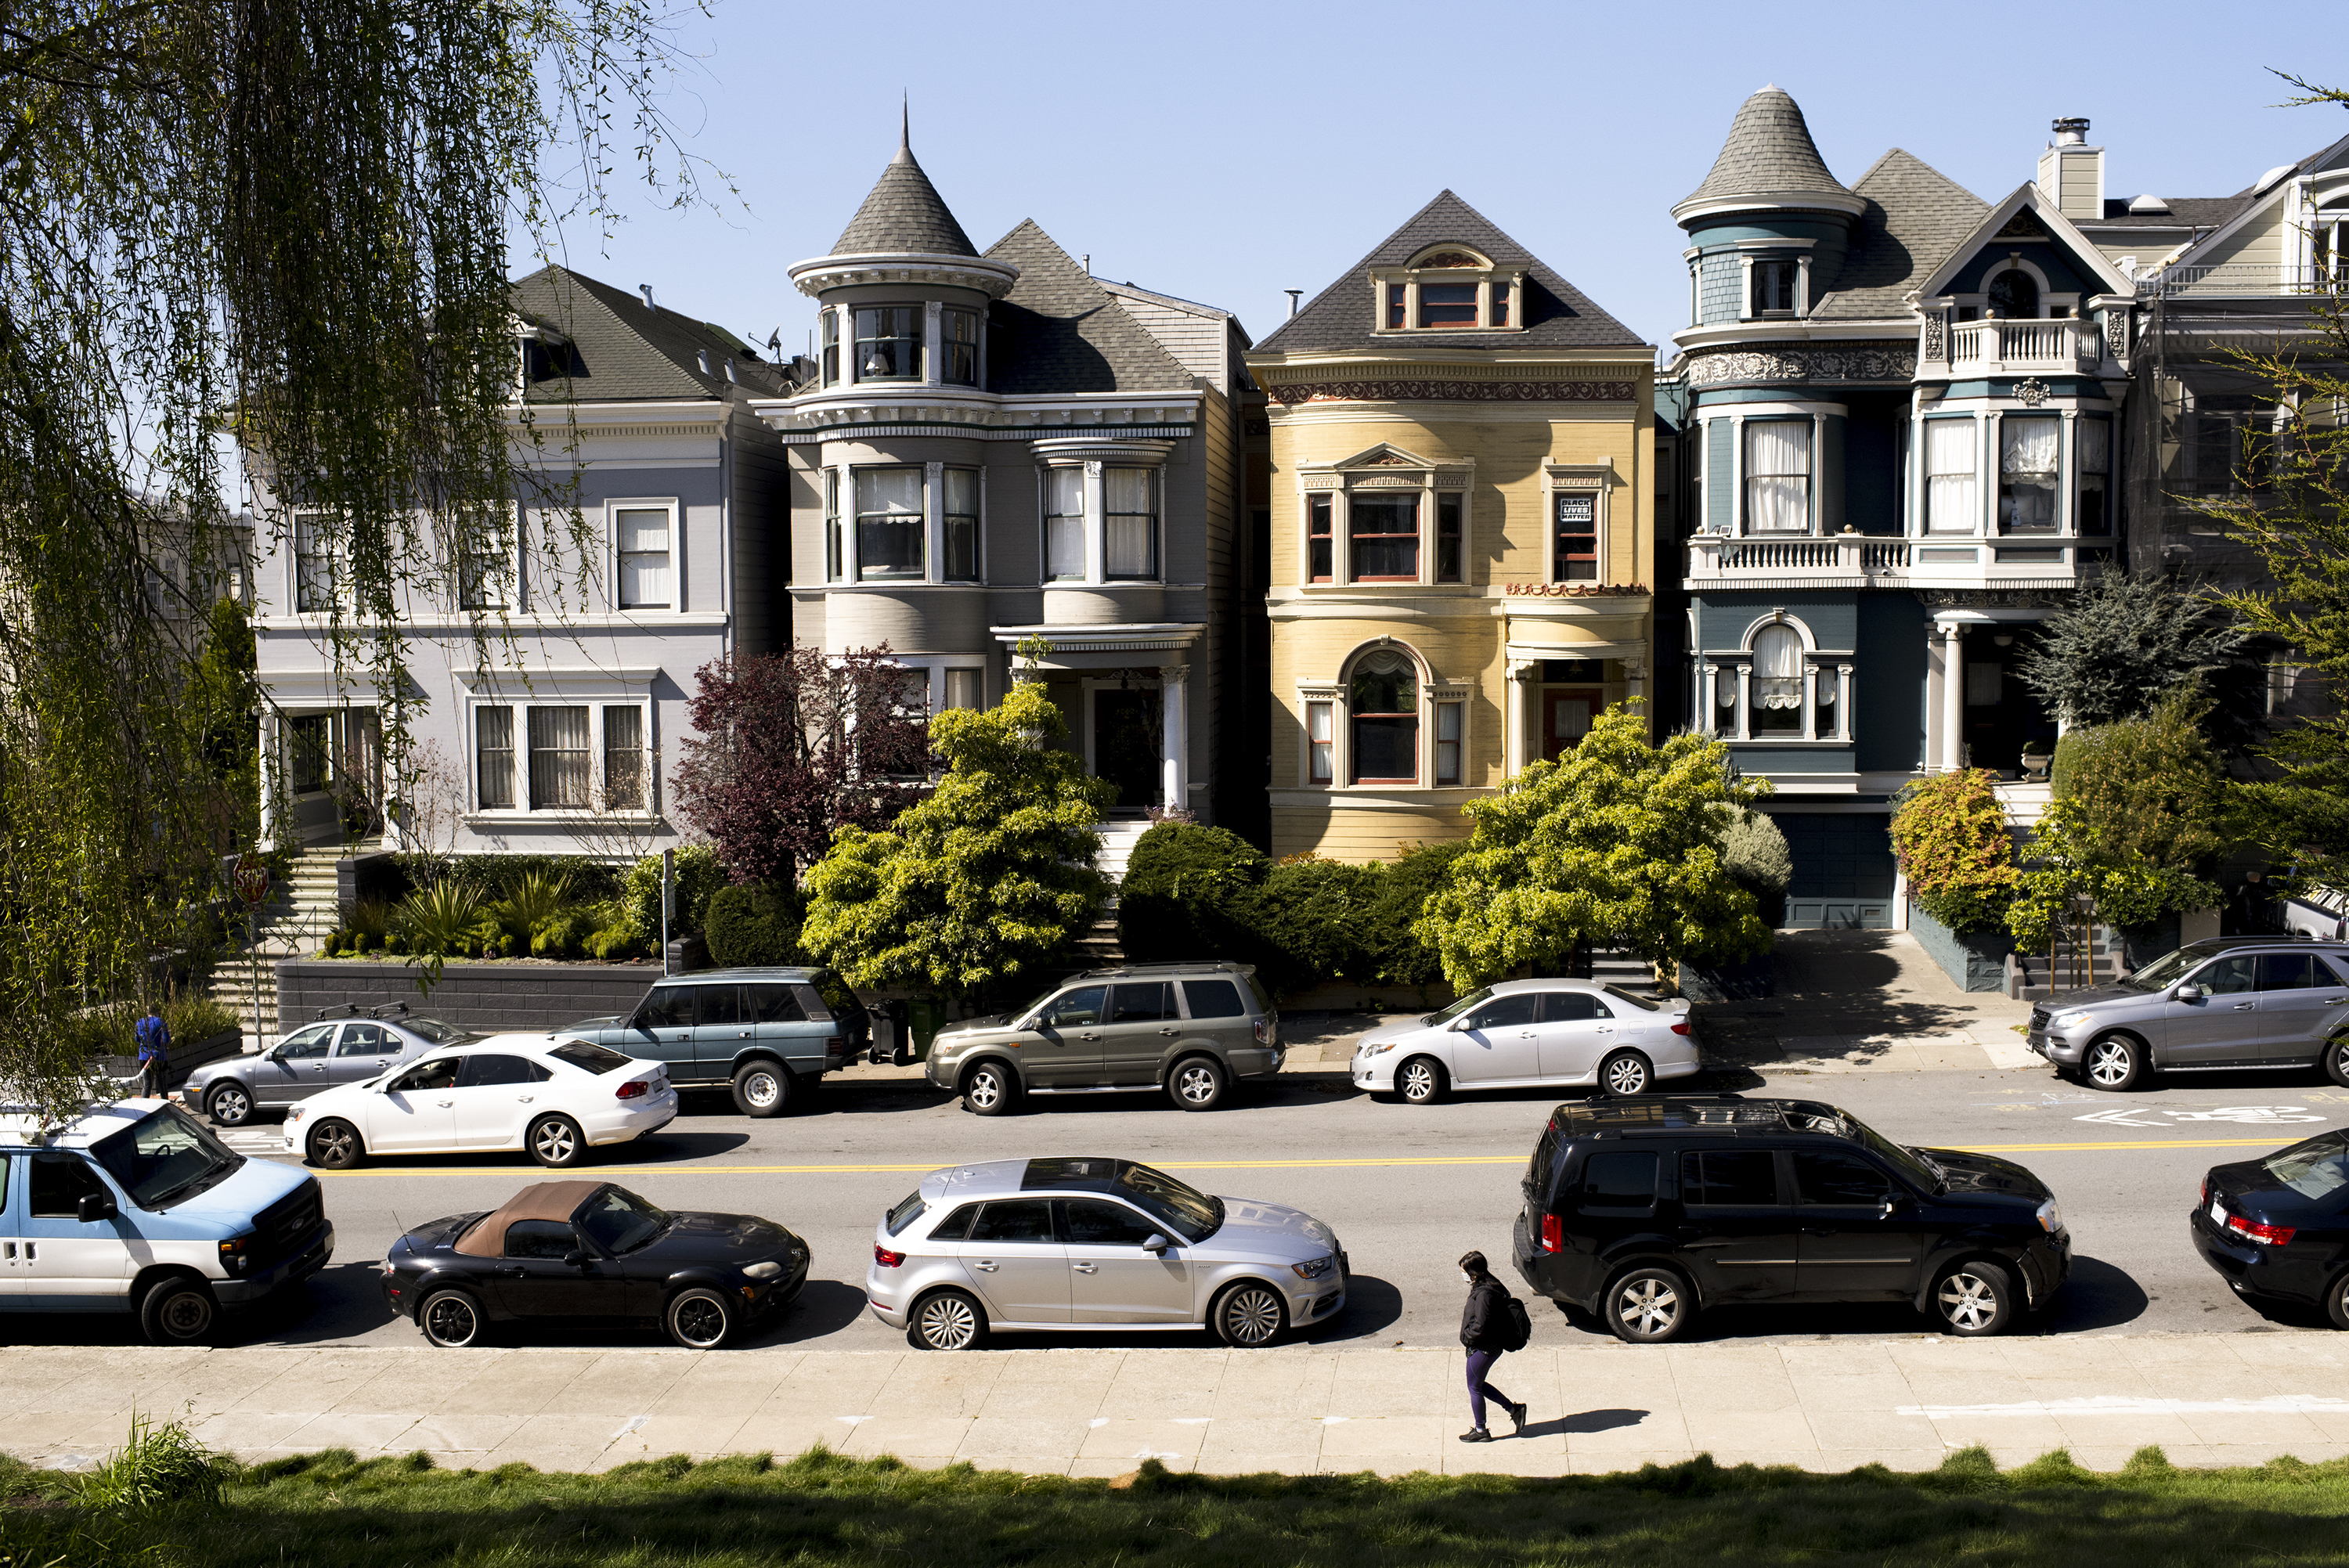 A row of Victorian homes on a San Francisco street.